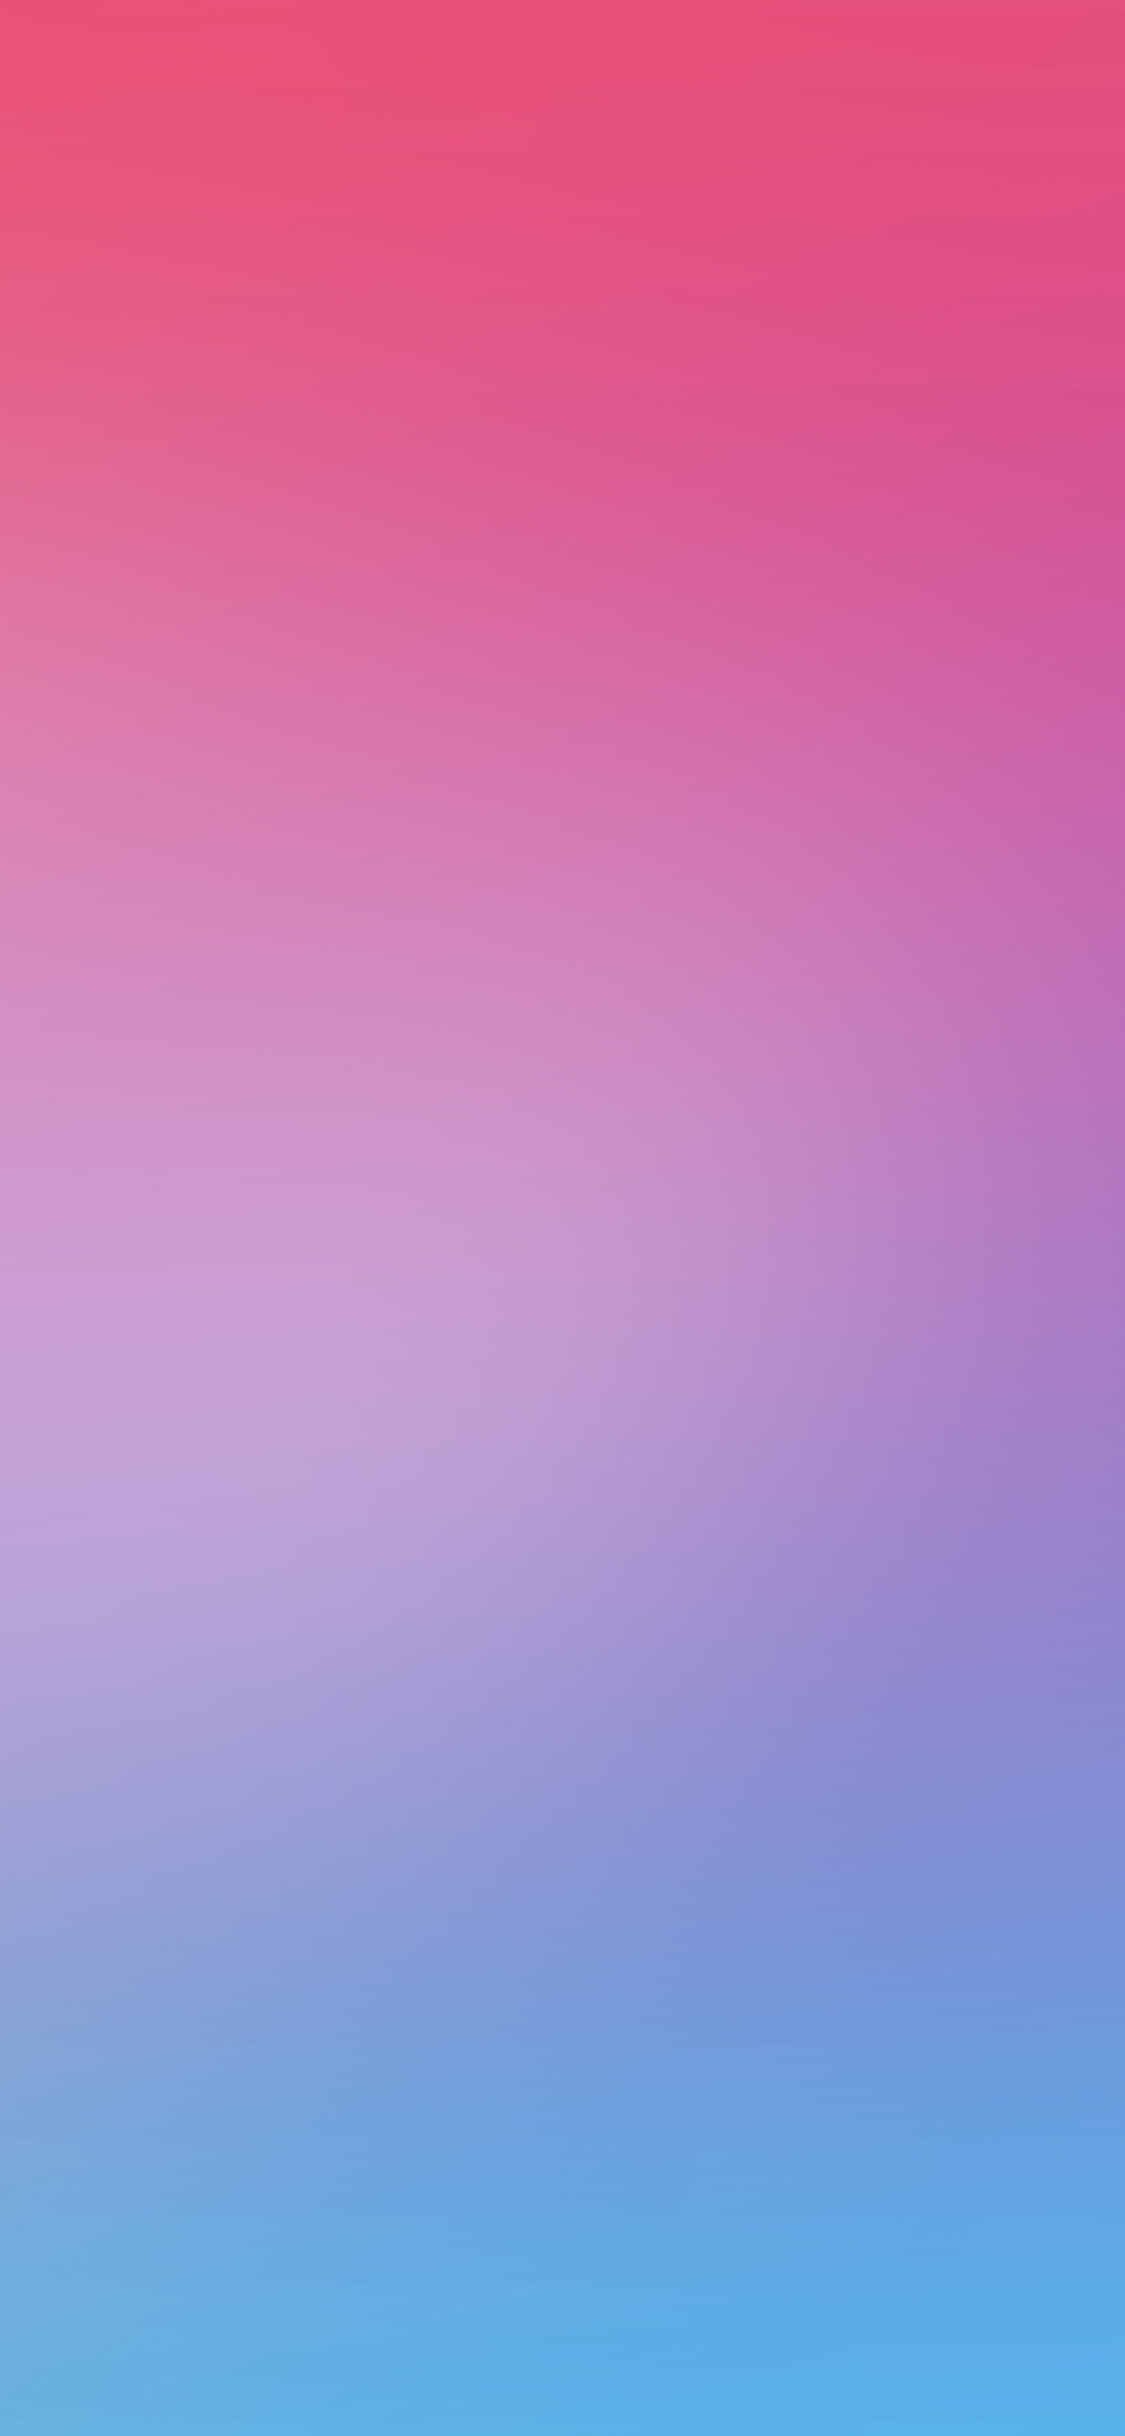 iPhoneXpapers.com-Apple-iPhone-wallpaper-sl28-soft-blue-red-pink-blur-gradation